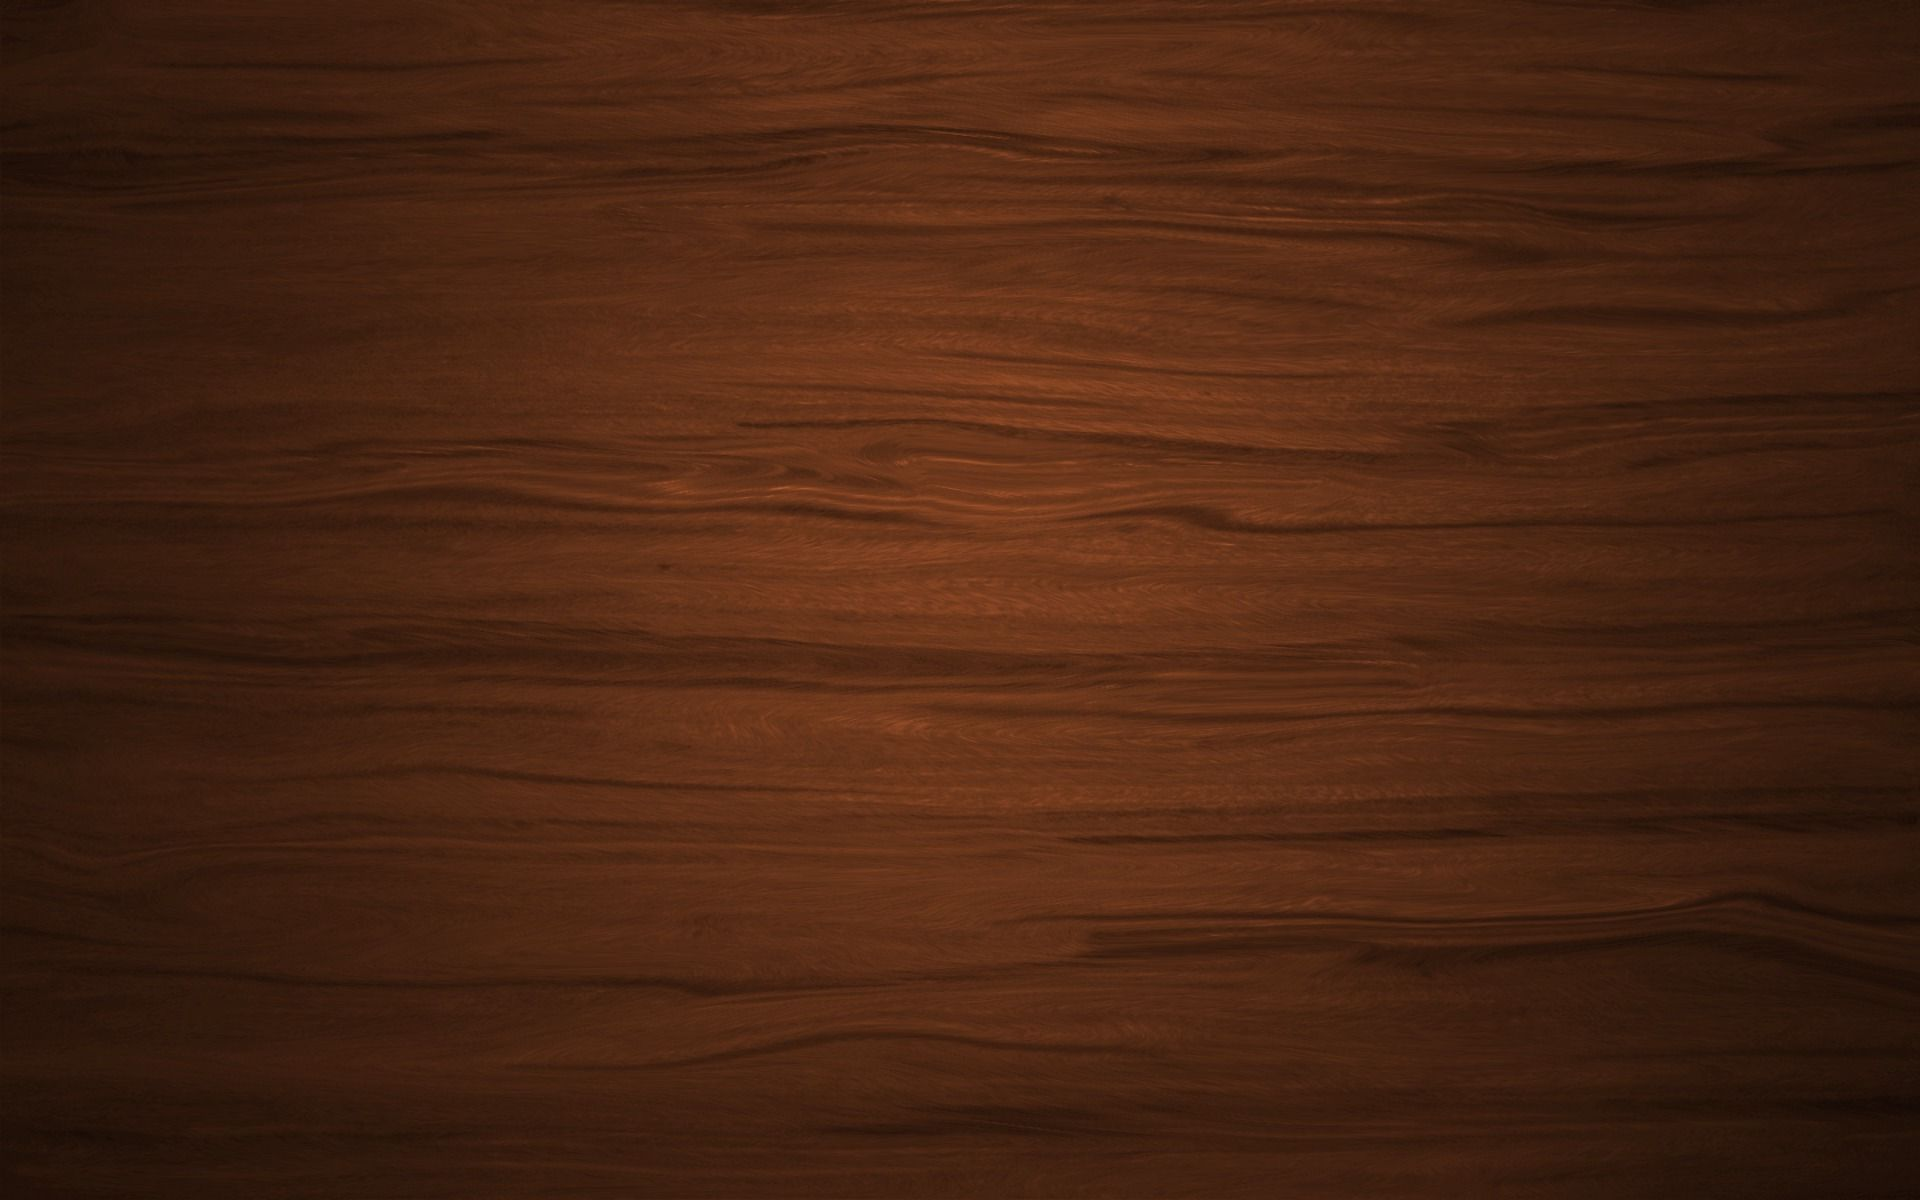 Wood Furniture Texture table top texture